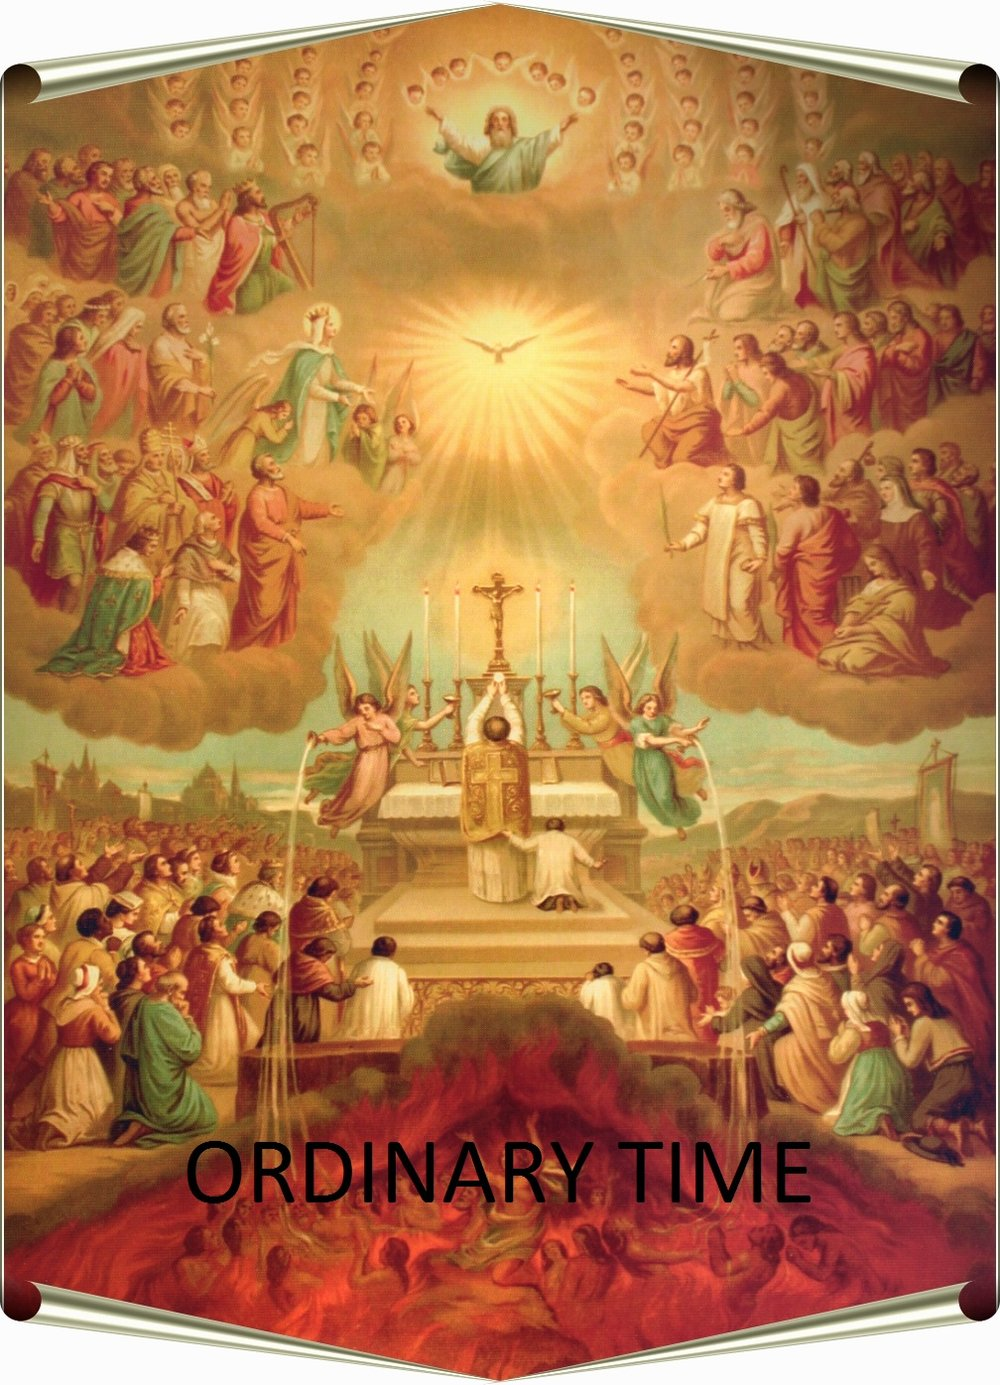 catholic essays purgatory The spurious arguments against purgatory by kevin tierney one of the most controversial doctrines of the catholic faith is the one we are set out to discuss right now, purgatory.